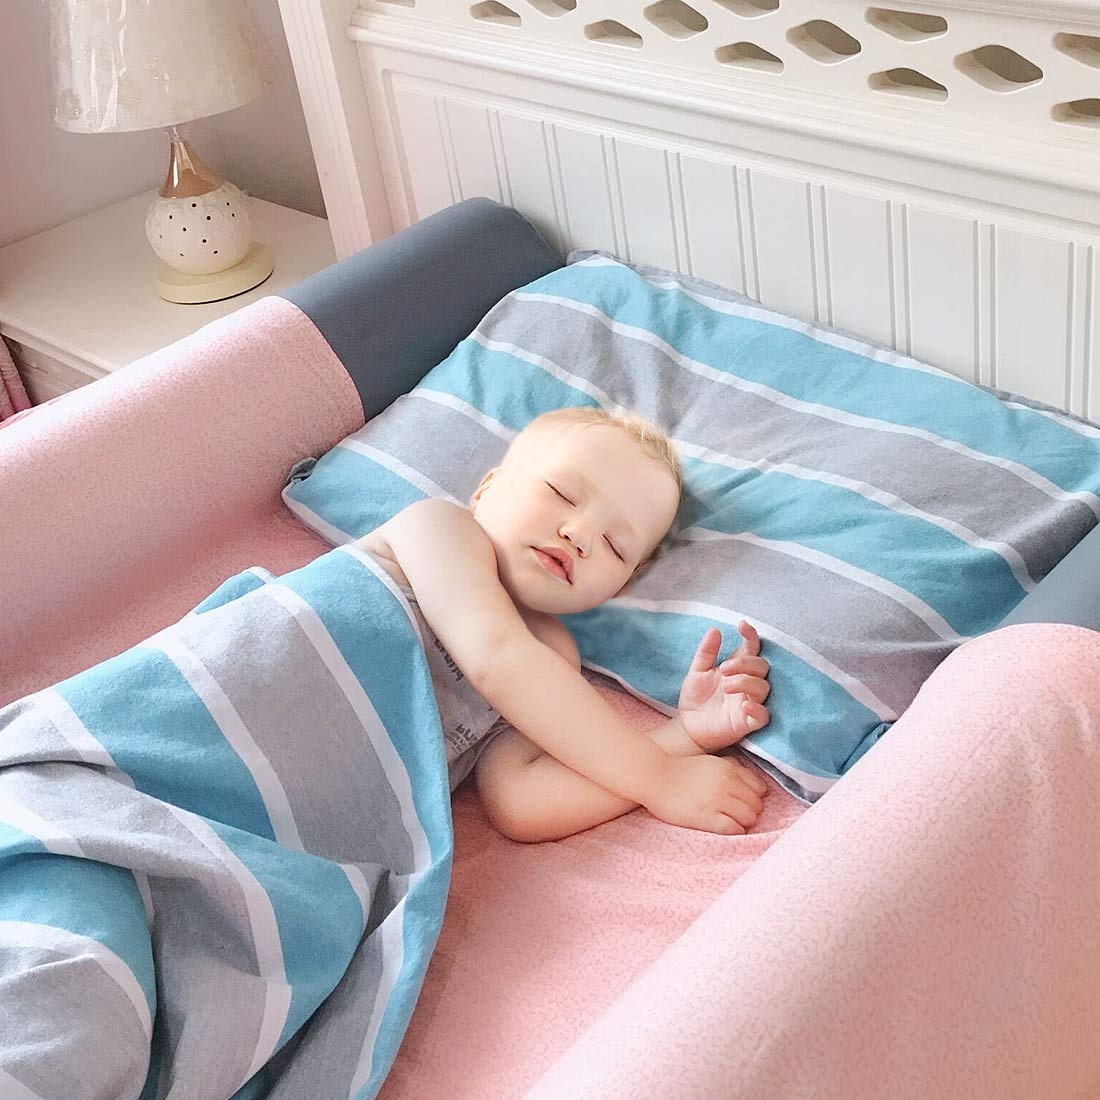 Inflatable Bed Rails Bumpers(2-Pack), Bed Rail for Toddlers with 2 Non-Slip Removable Covers, Waterproof Kids Safety Guard for Baby, Portable for Home Hotel or Travel